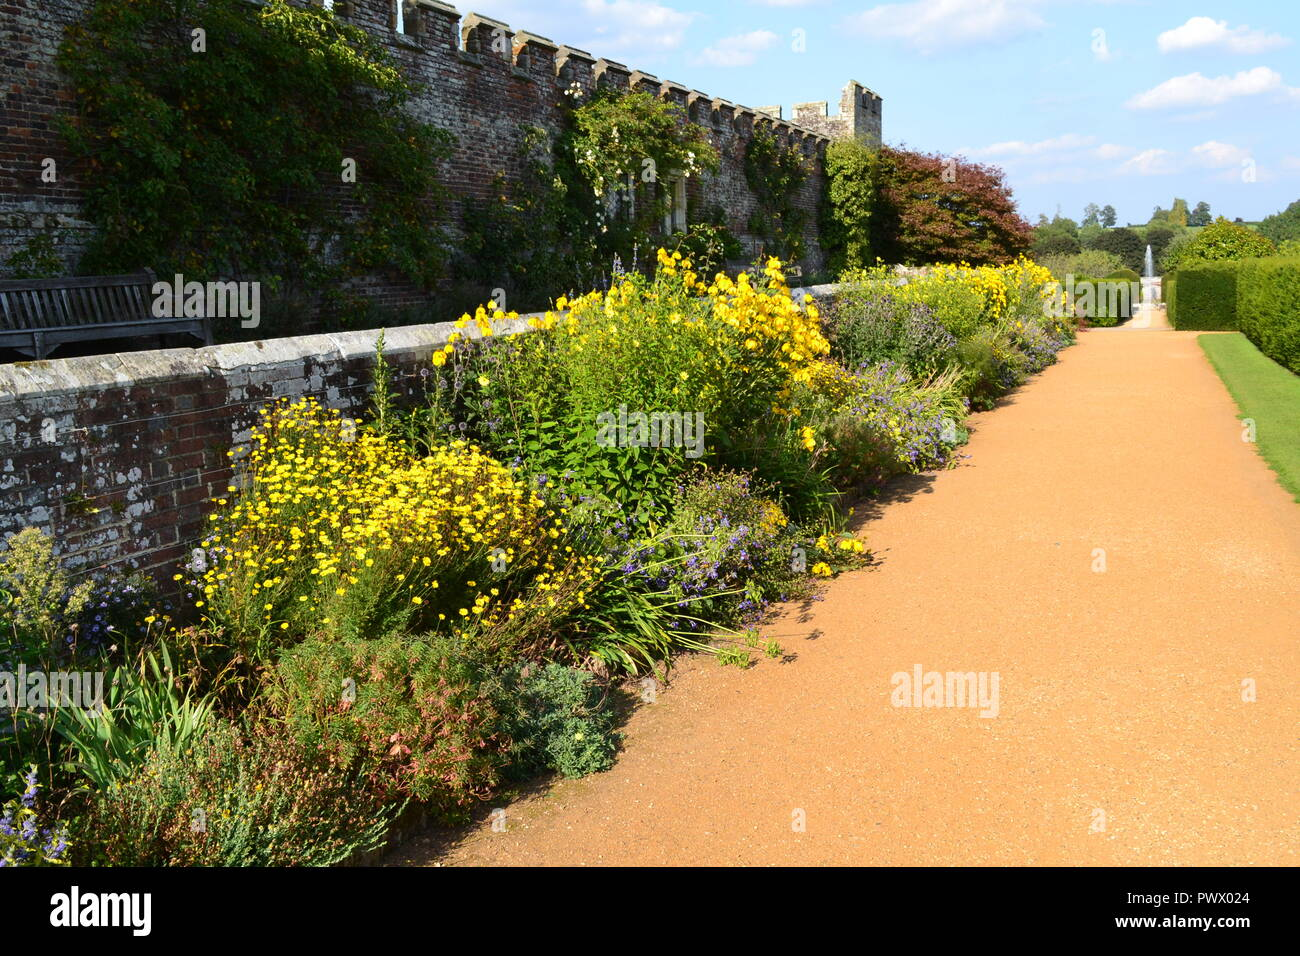 Penshurst Place gardens, Tonbridge, Kent, England, UK in summer 2017 - Stock Image